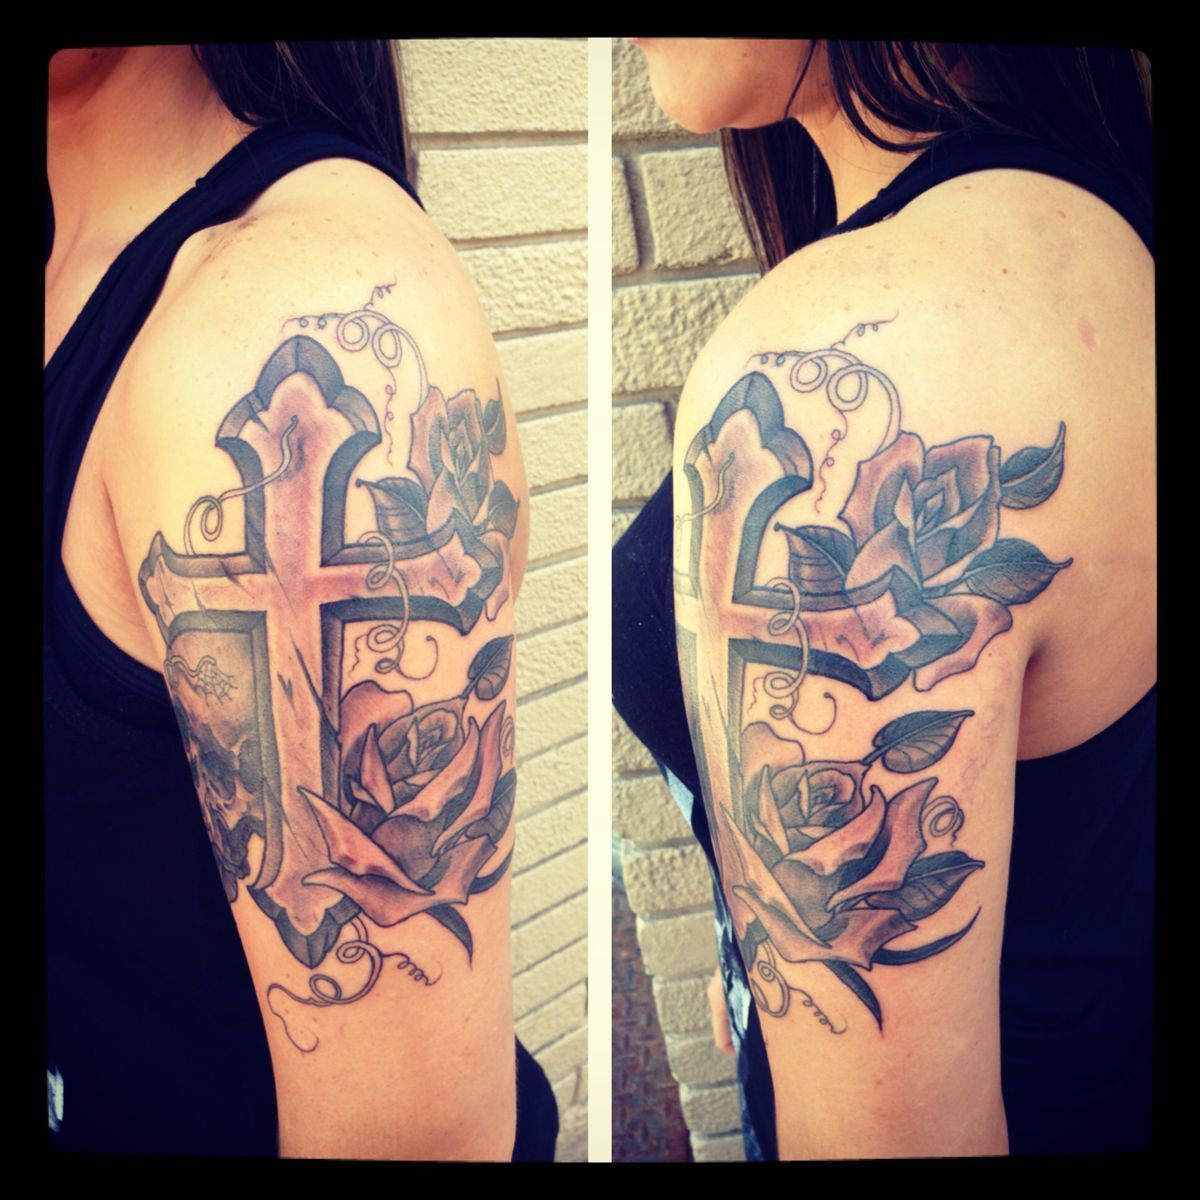 Pin by michelle miller on products i love pinterest tattoos